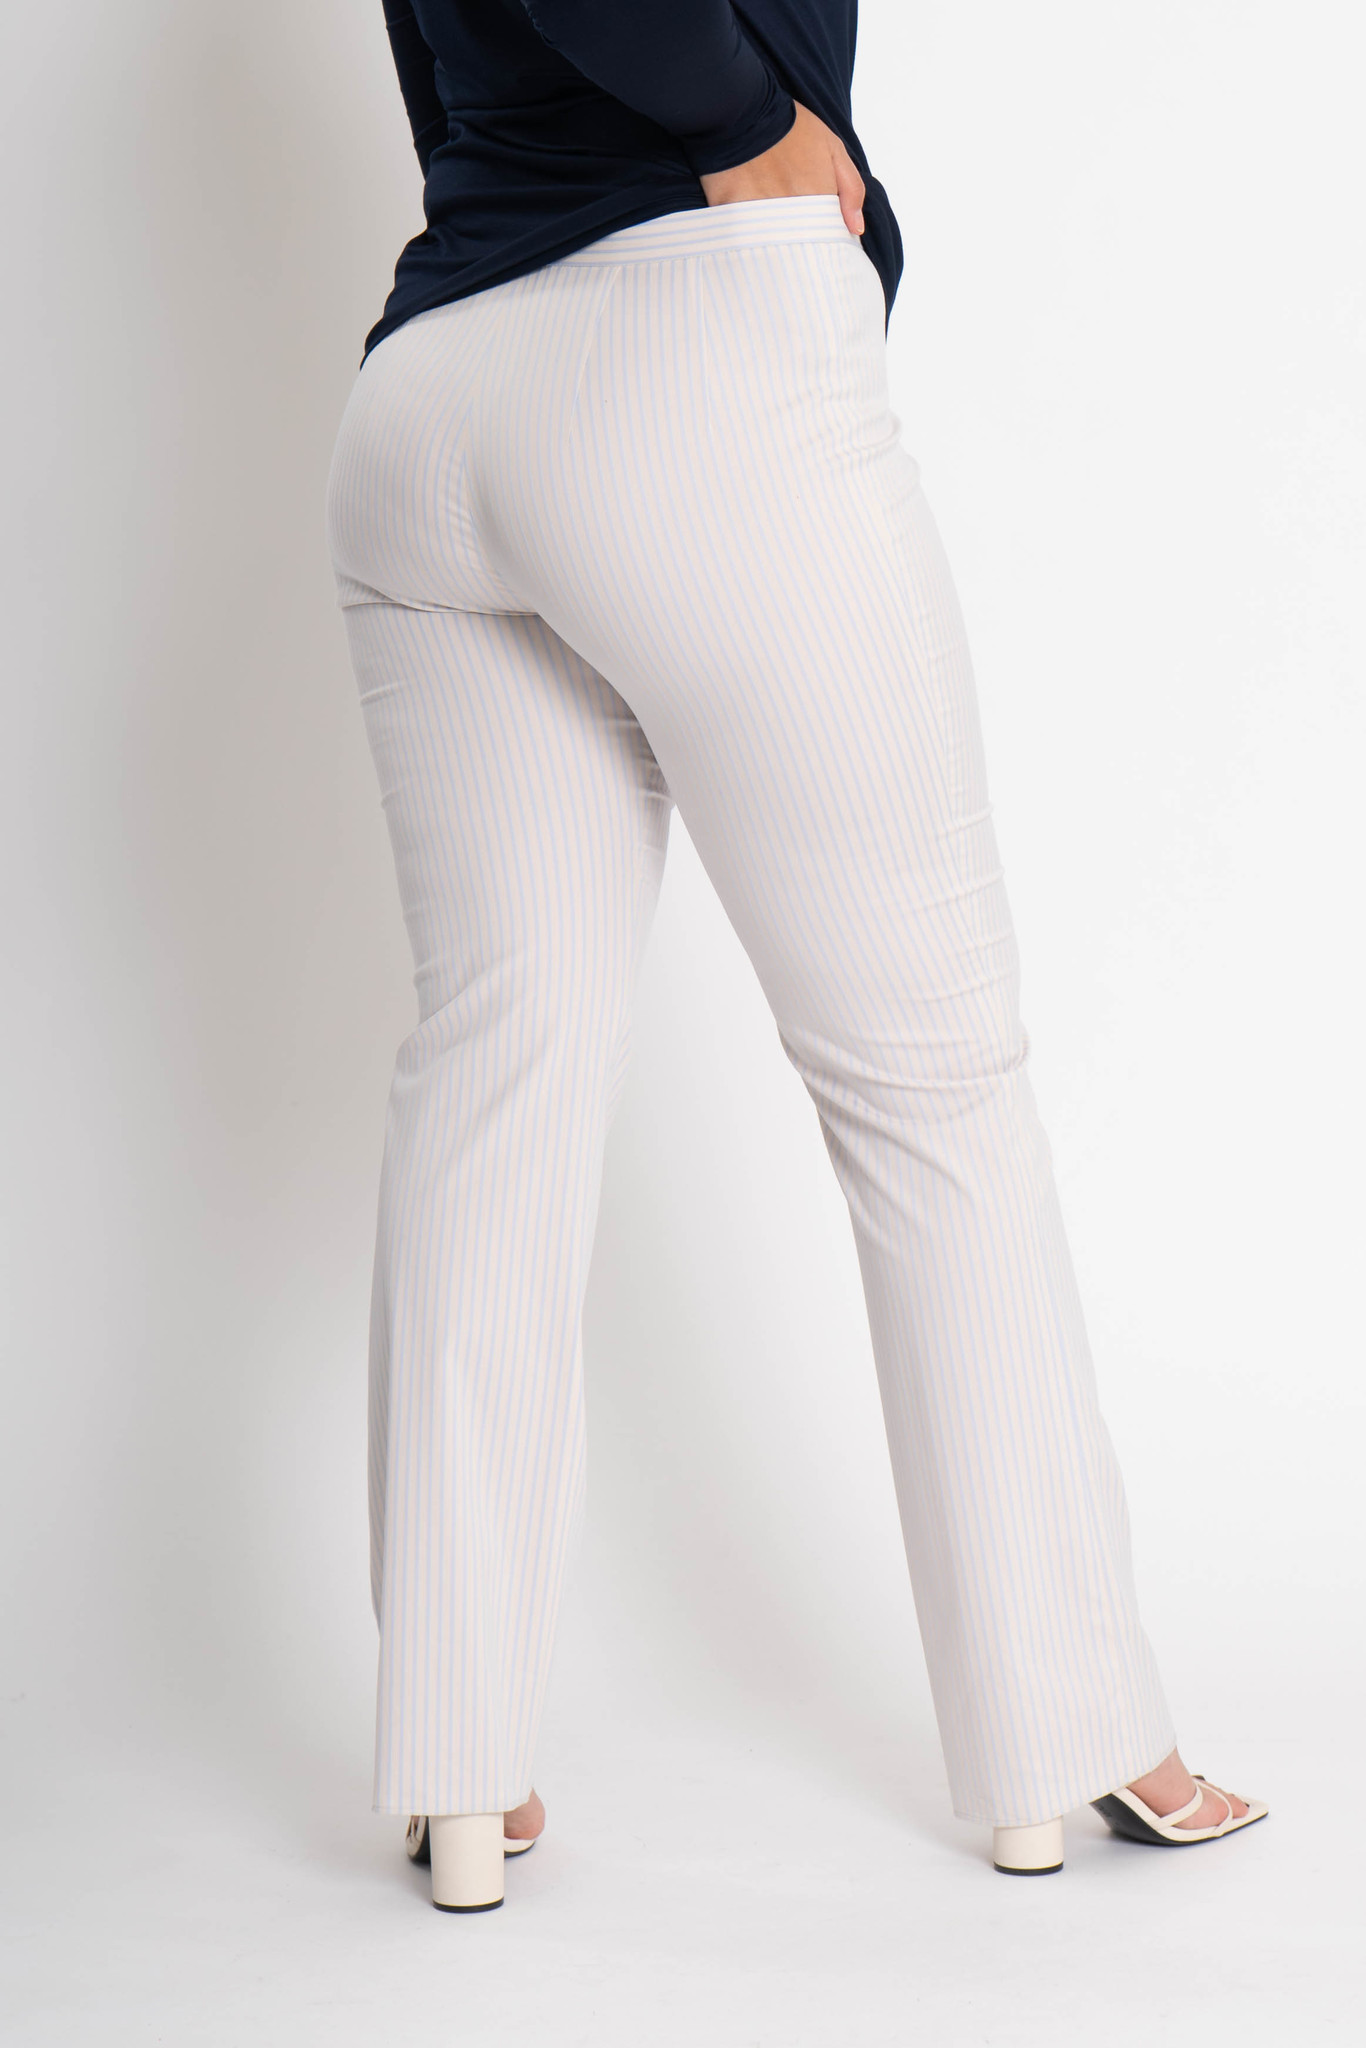 ZWOLF Trousers in striped stretch cotton mix-3